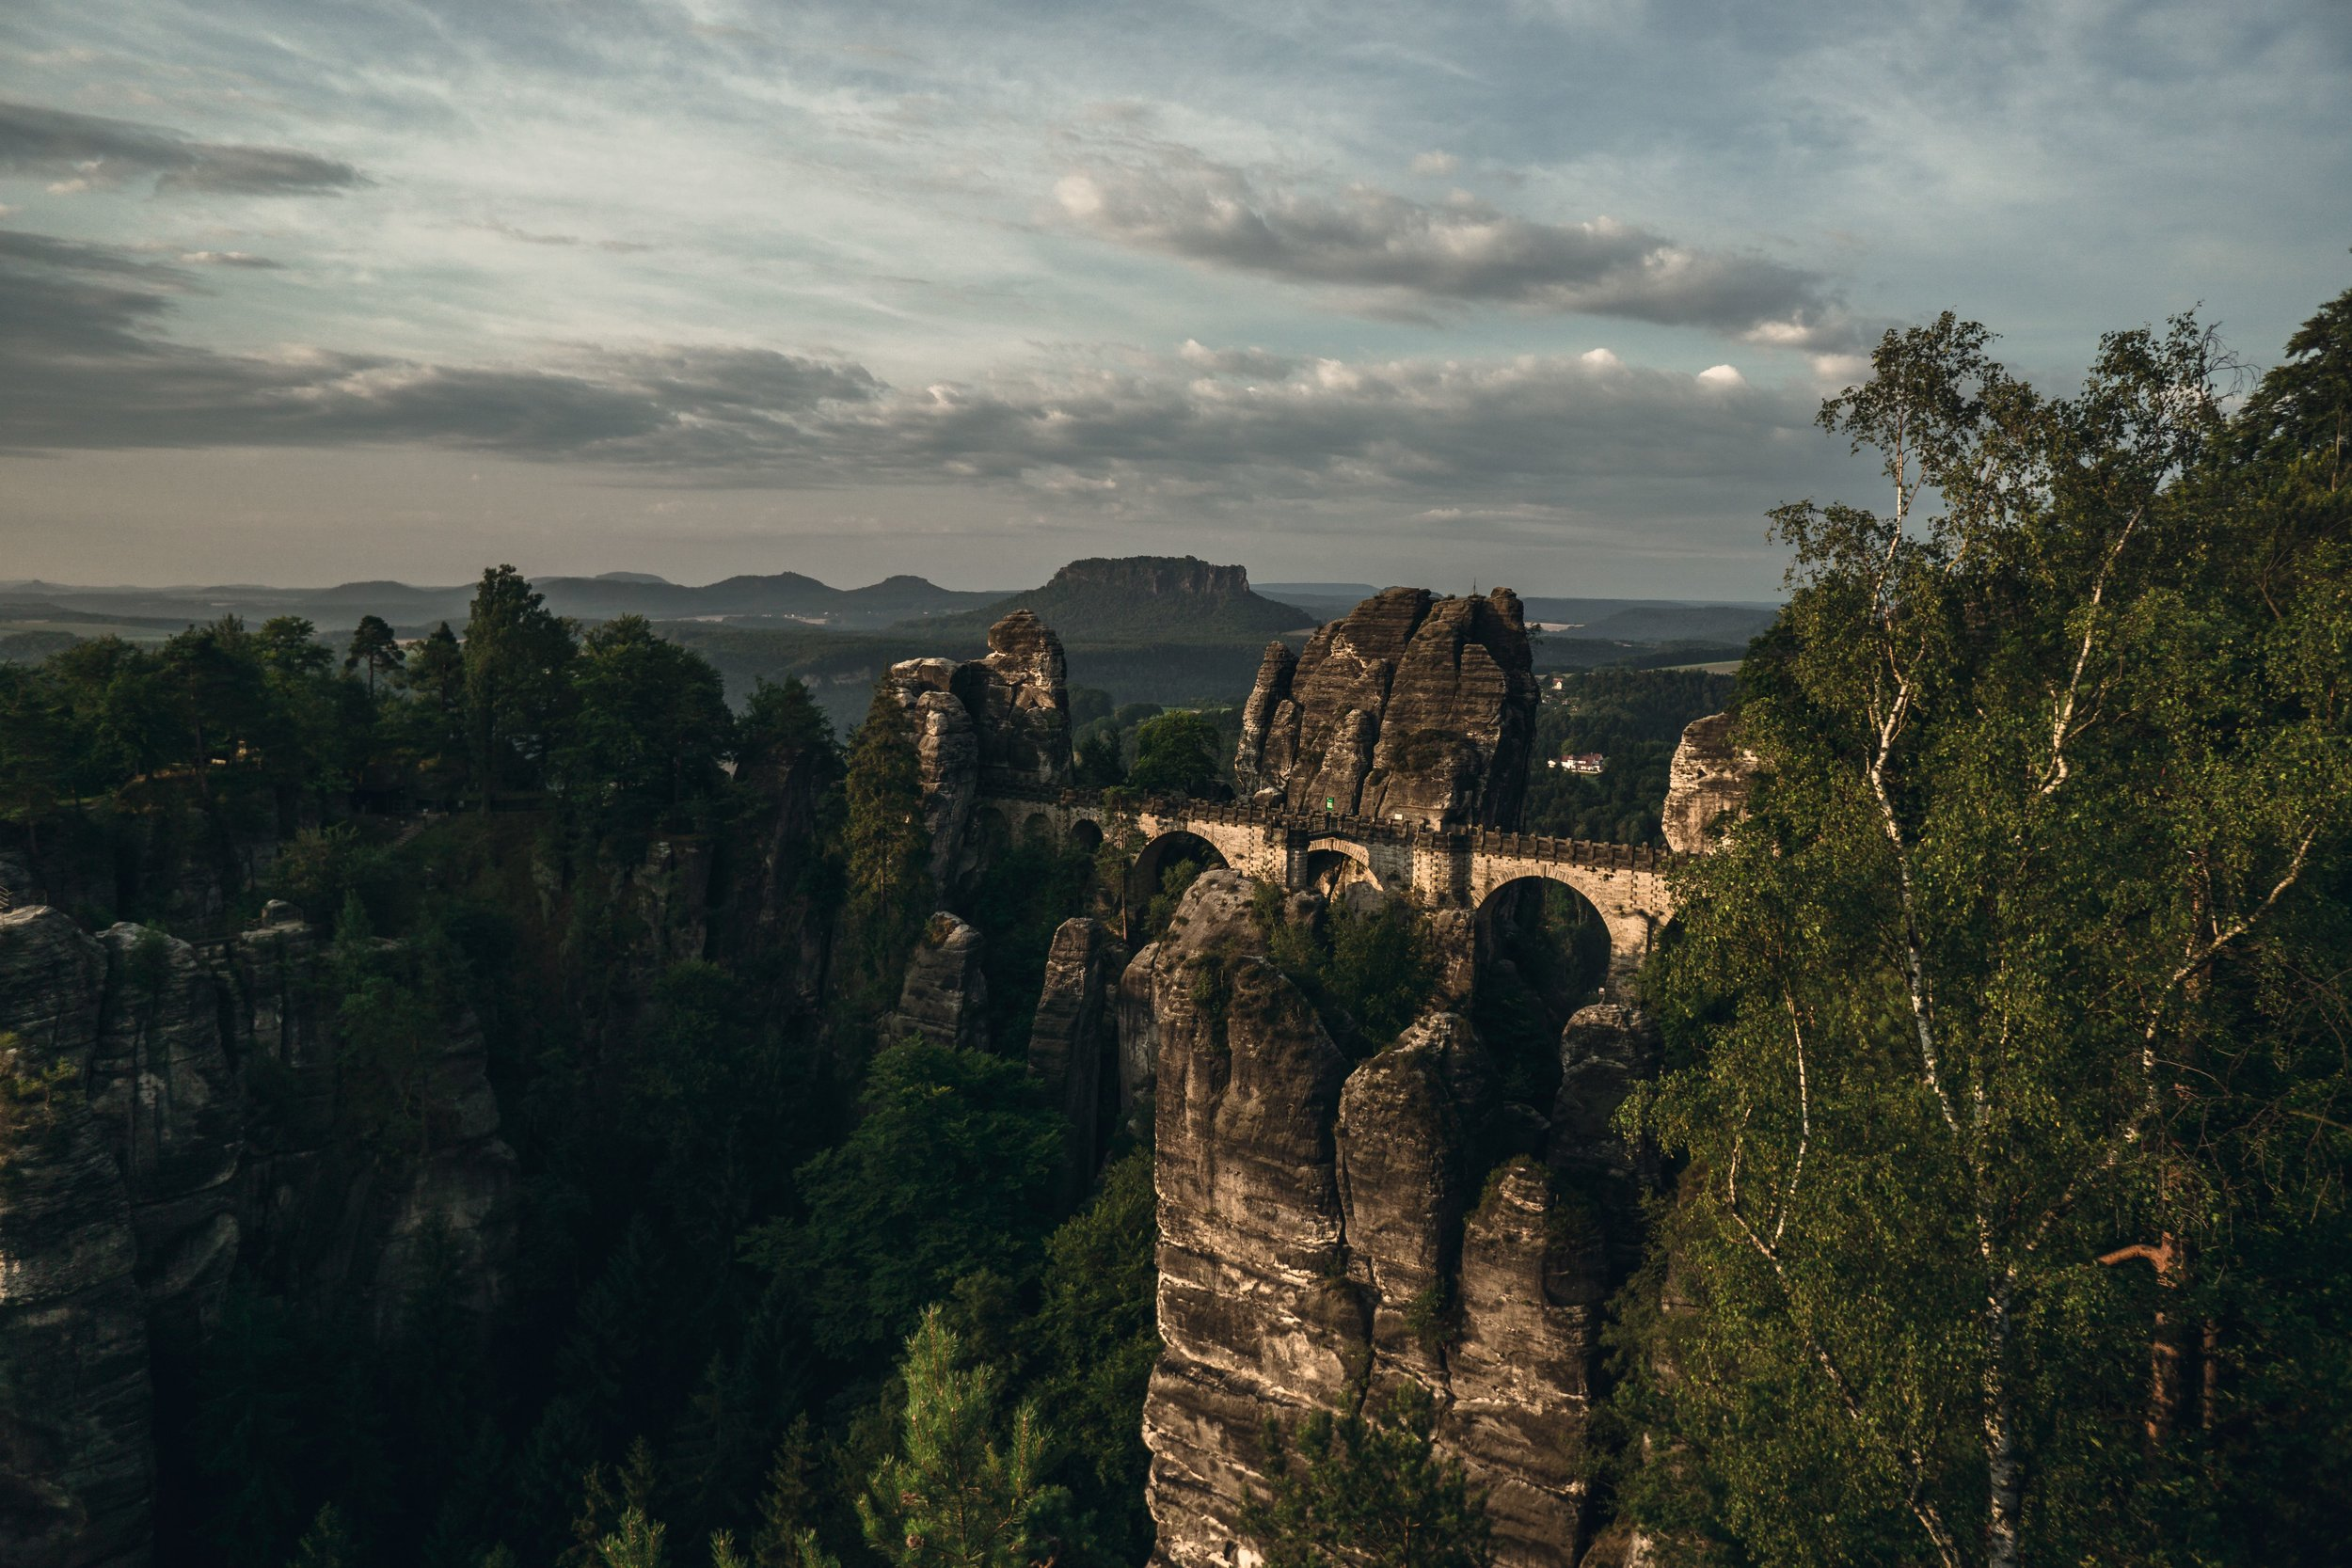 That is the Bastei, which is a formation of rocks with a bridge built in in a height of 194 about the ground. Shot with the Sony Alpha 6000 and a Sony 16mm 2.8 lens.